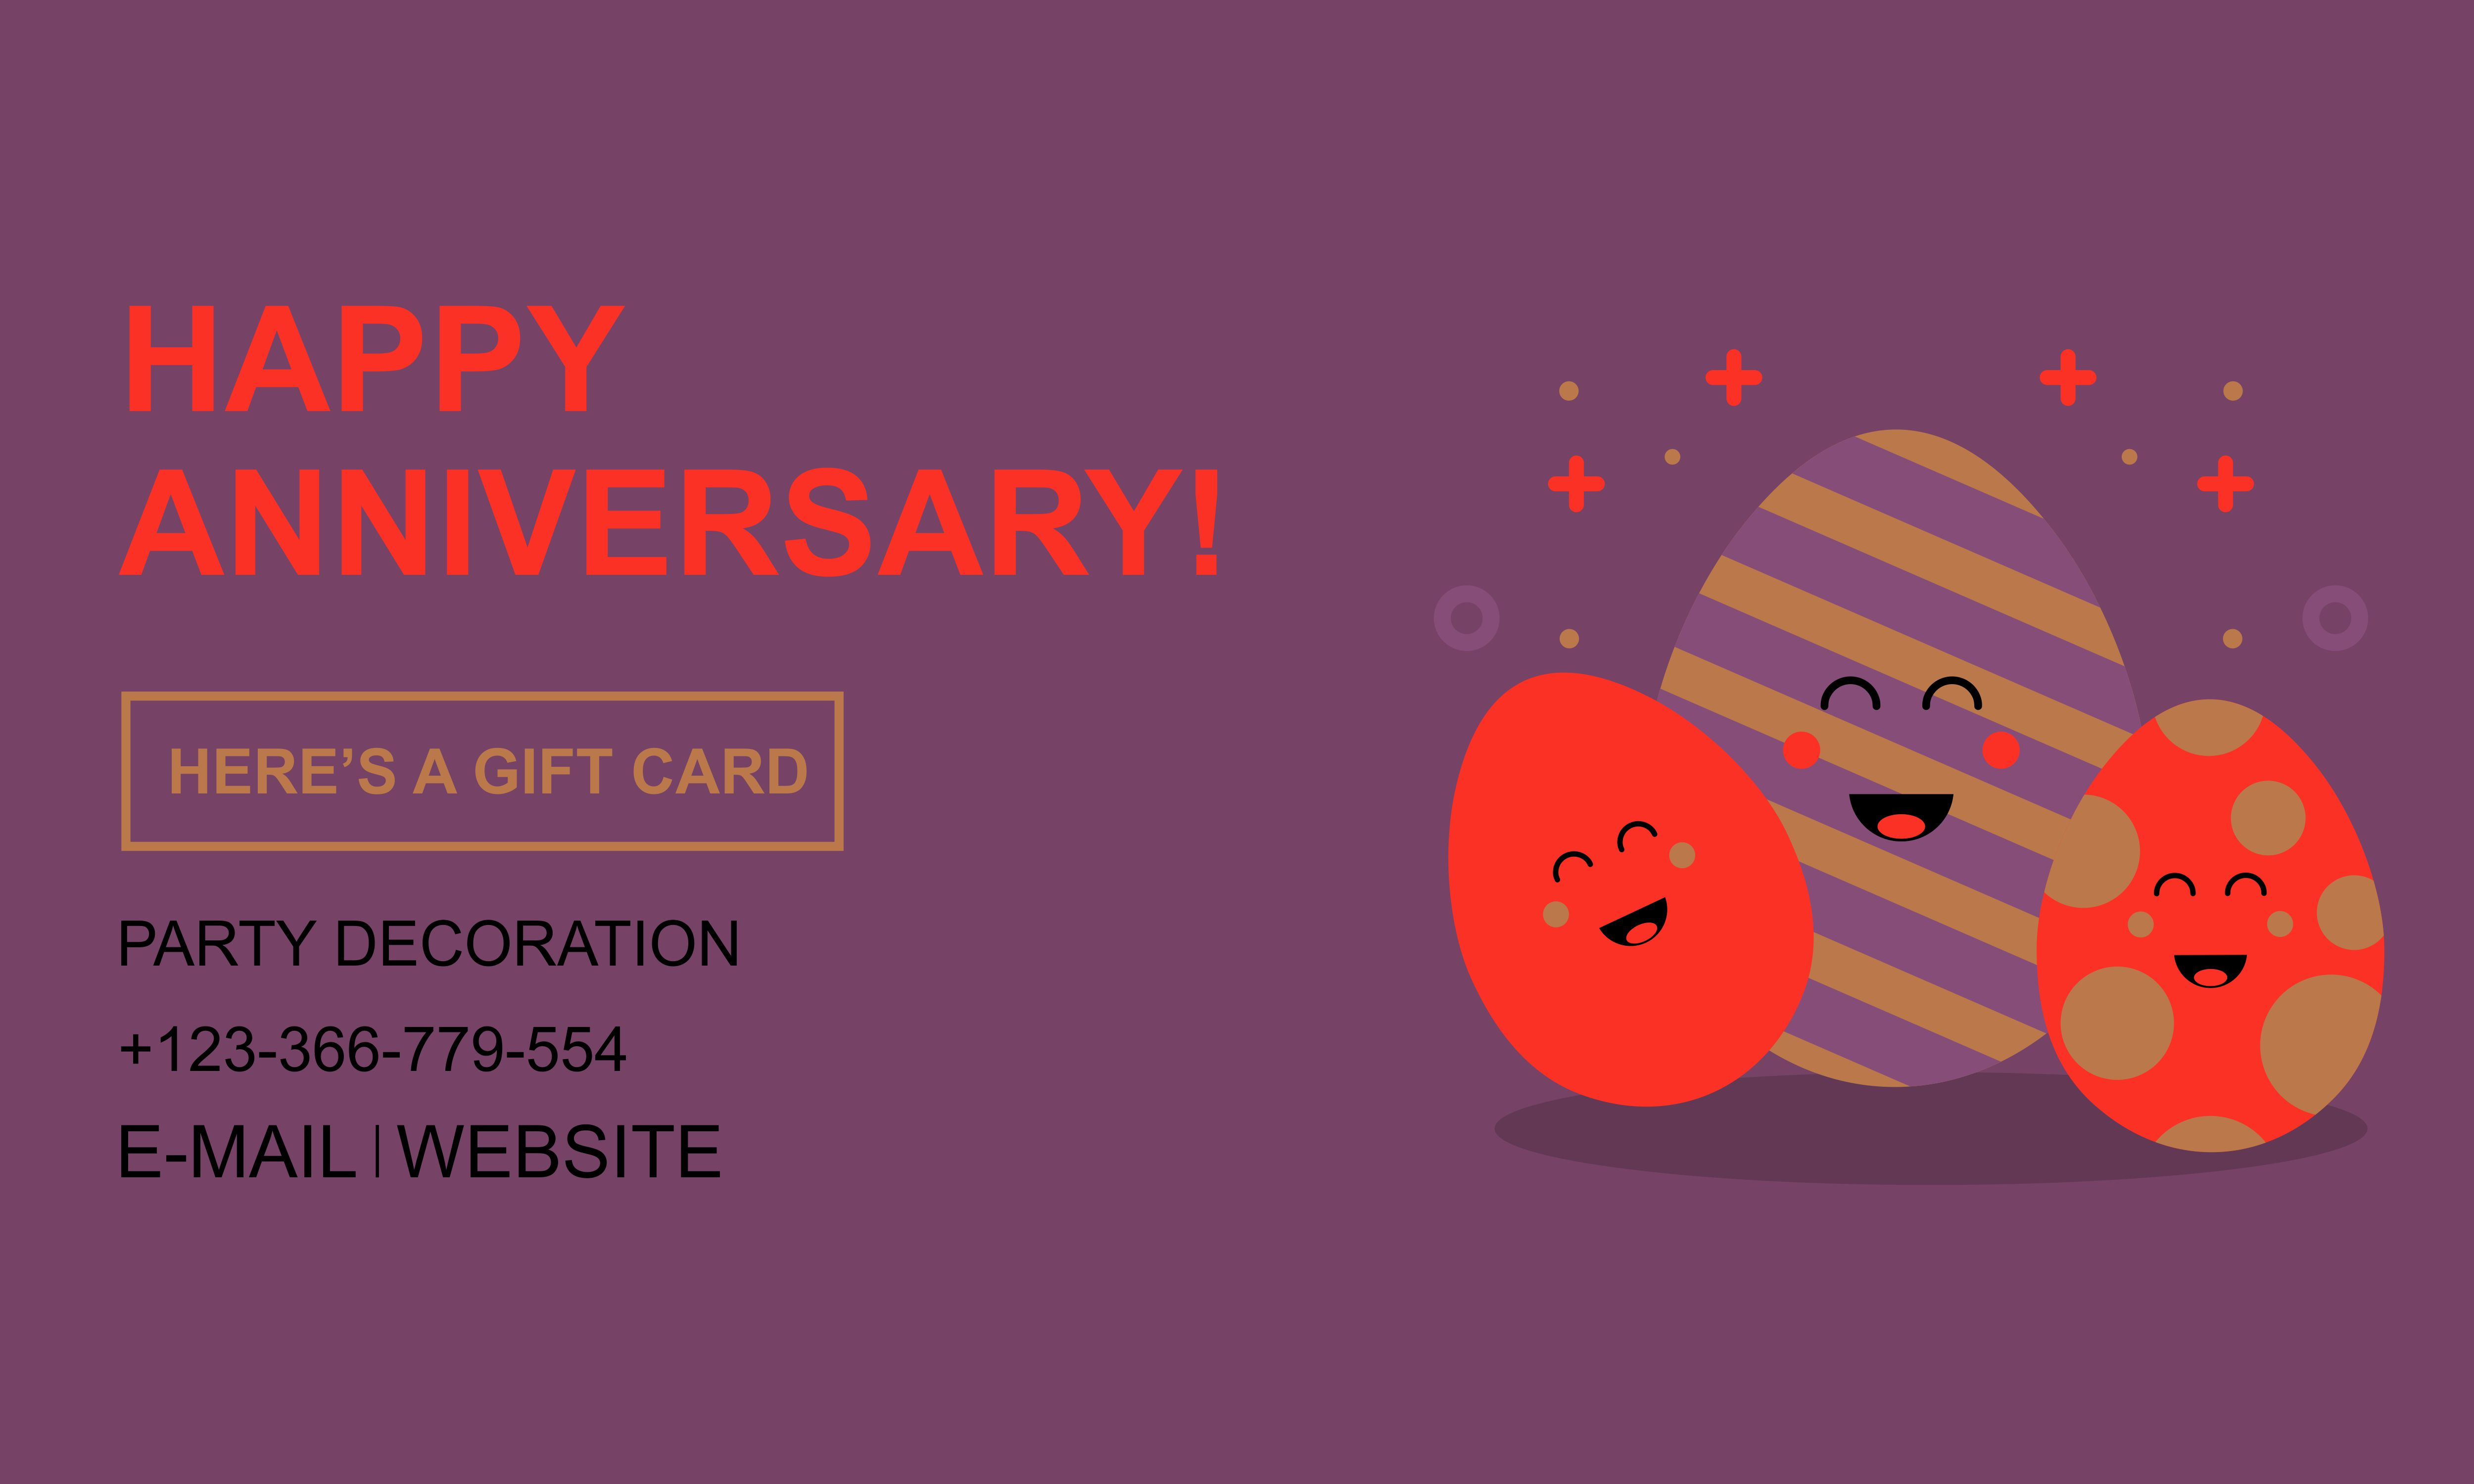 Download Free Happy Anniversary Card Greeting Flat Graphic By Deemka Studio for Cricut Explore, Silhouette and other cutting machines.